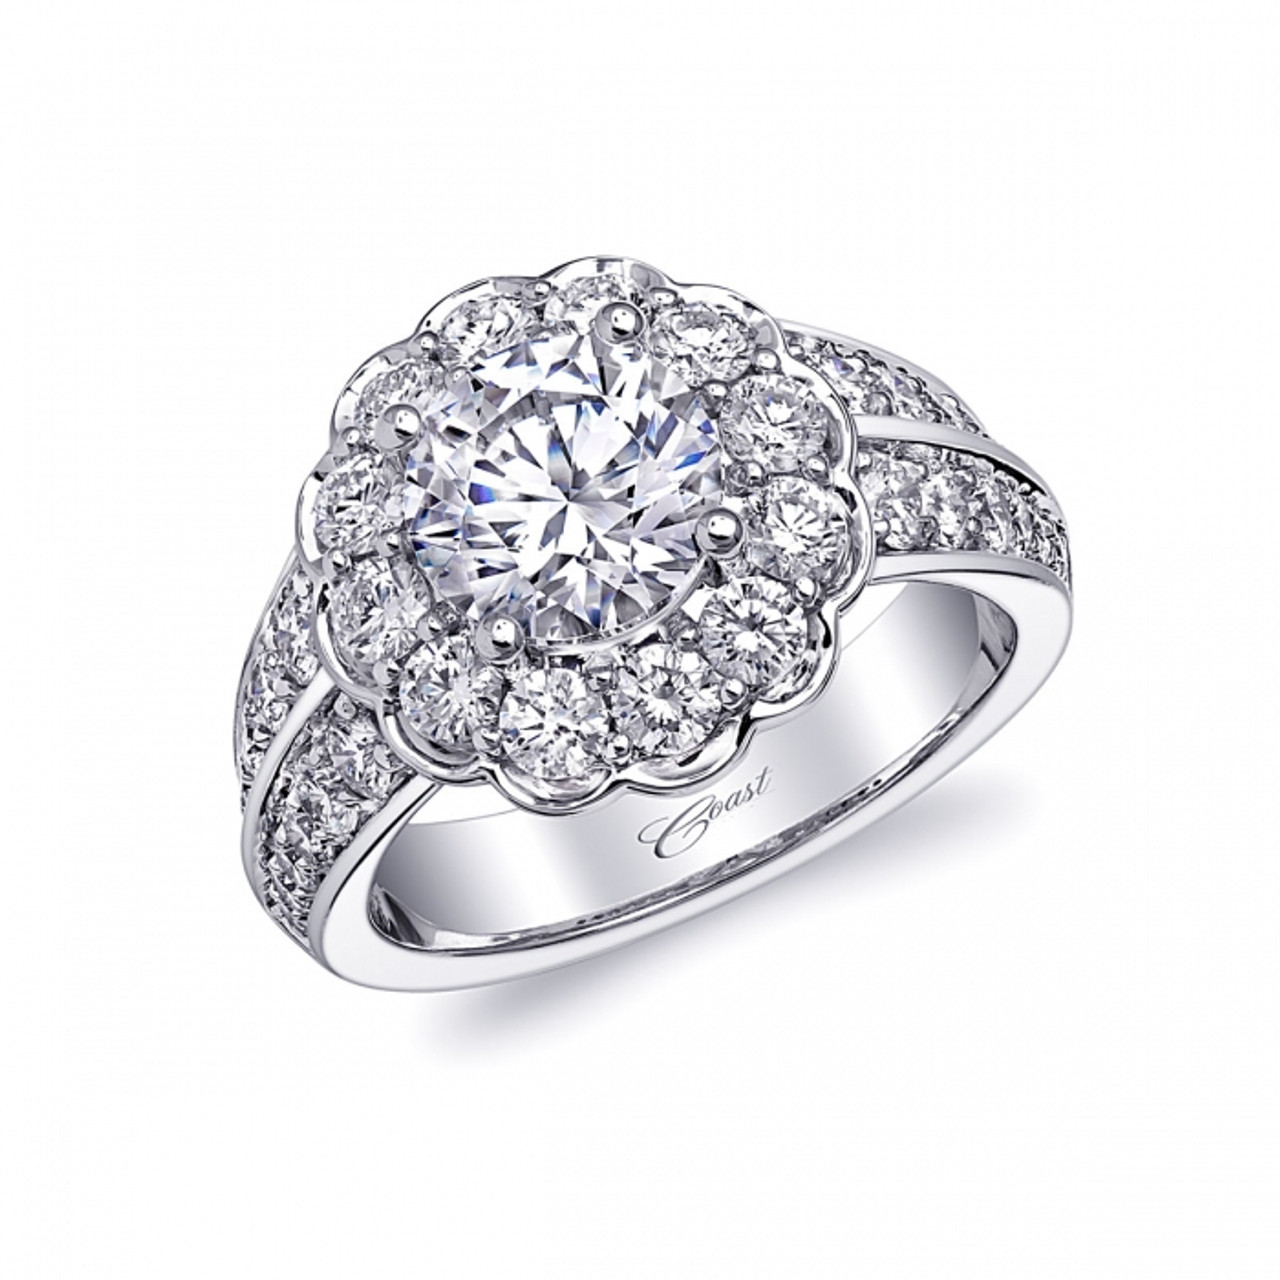 3affe1294a73c Round Flower Halo Double Row Engagement Ring Setting (1.45ctw ...